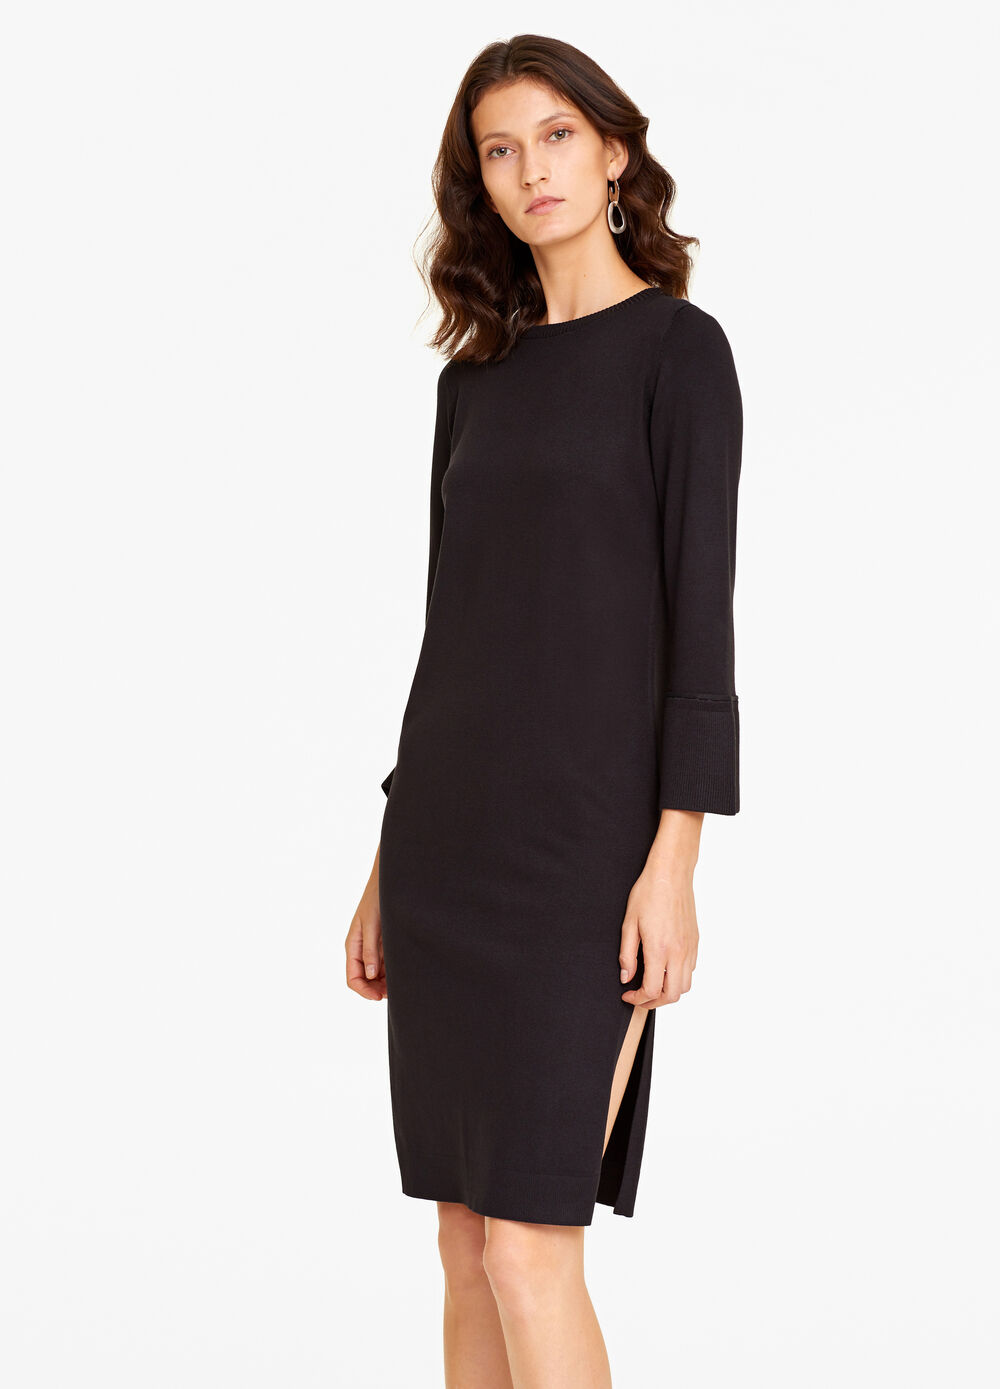 Dress with three-quarter sleeves.